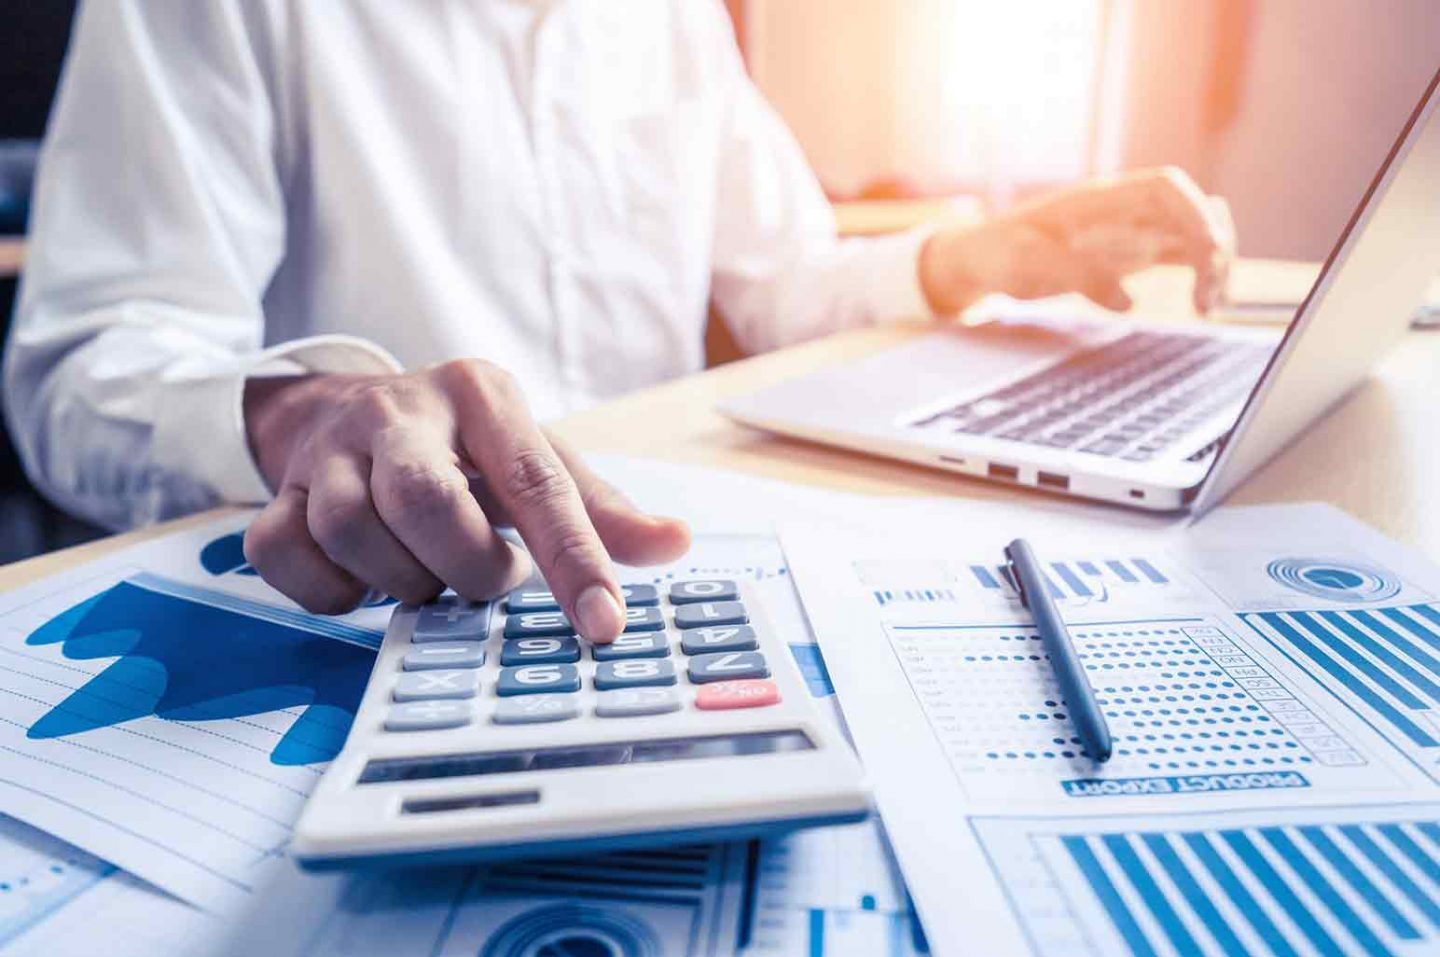 How To Estimate And Manage Your Business Finances